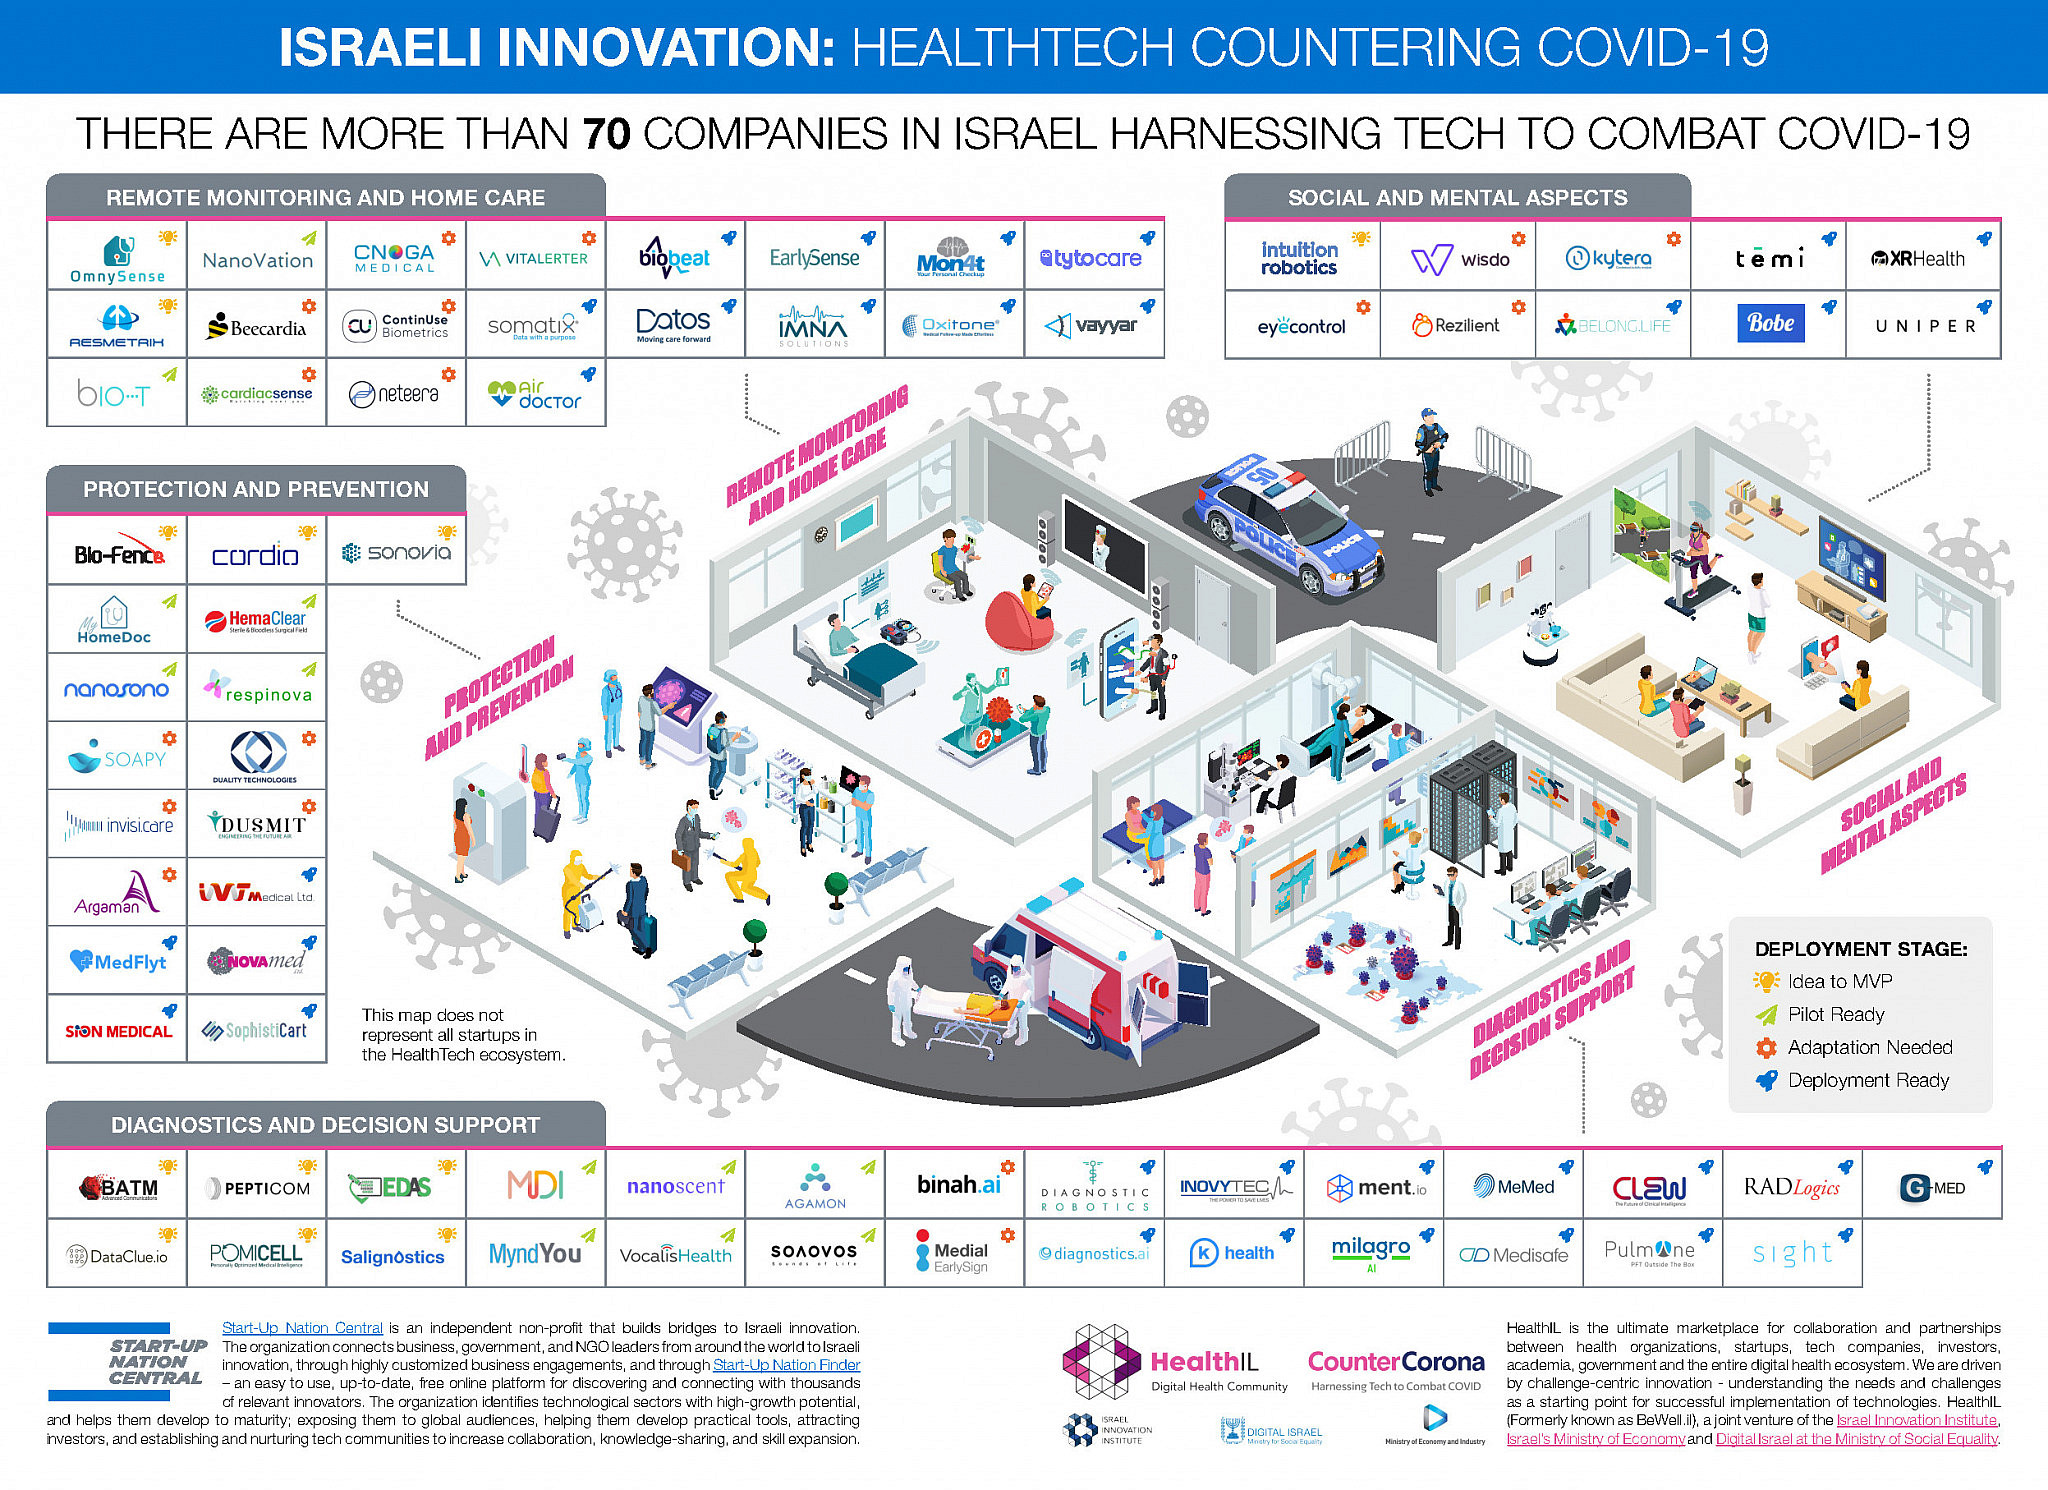 Israeli innovation in the face of COVID-19 conspiracy theories and antisemitism